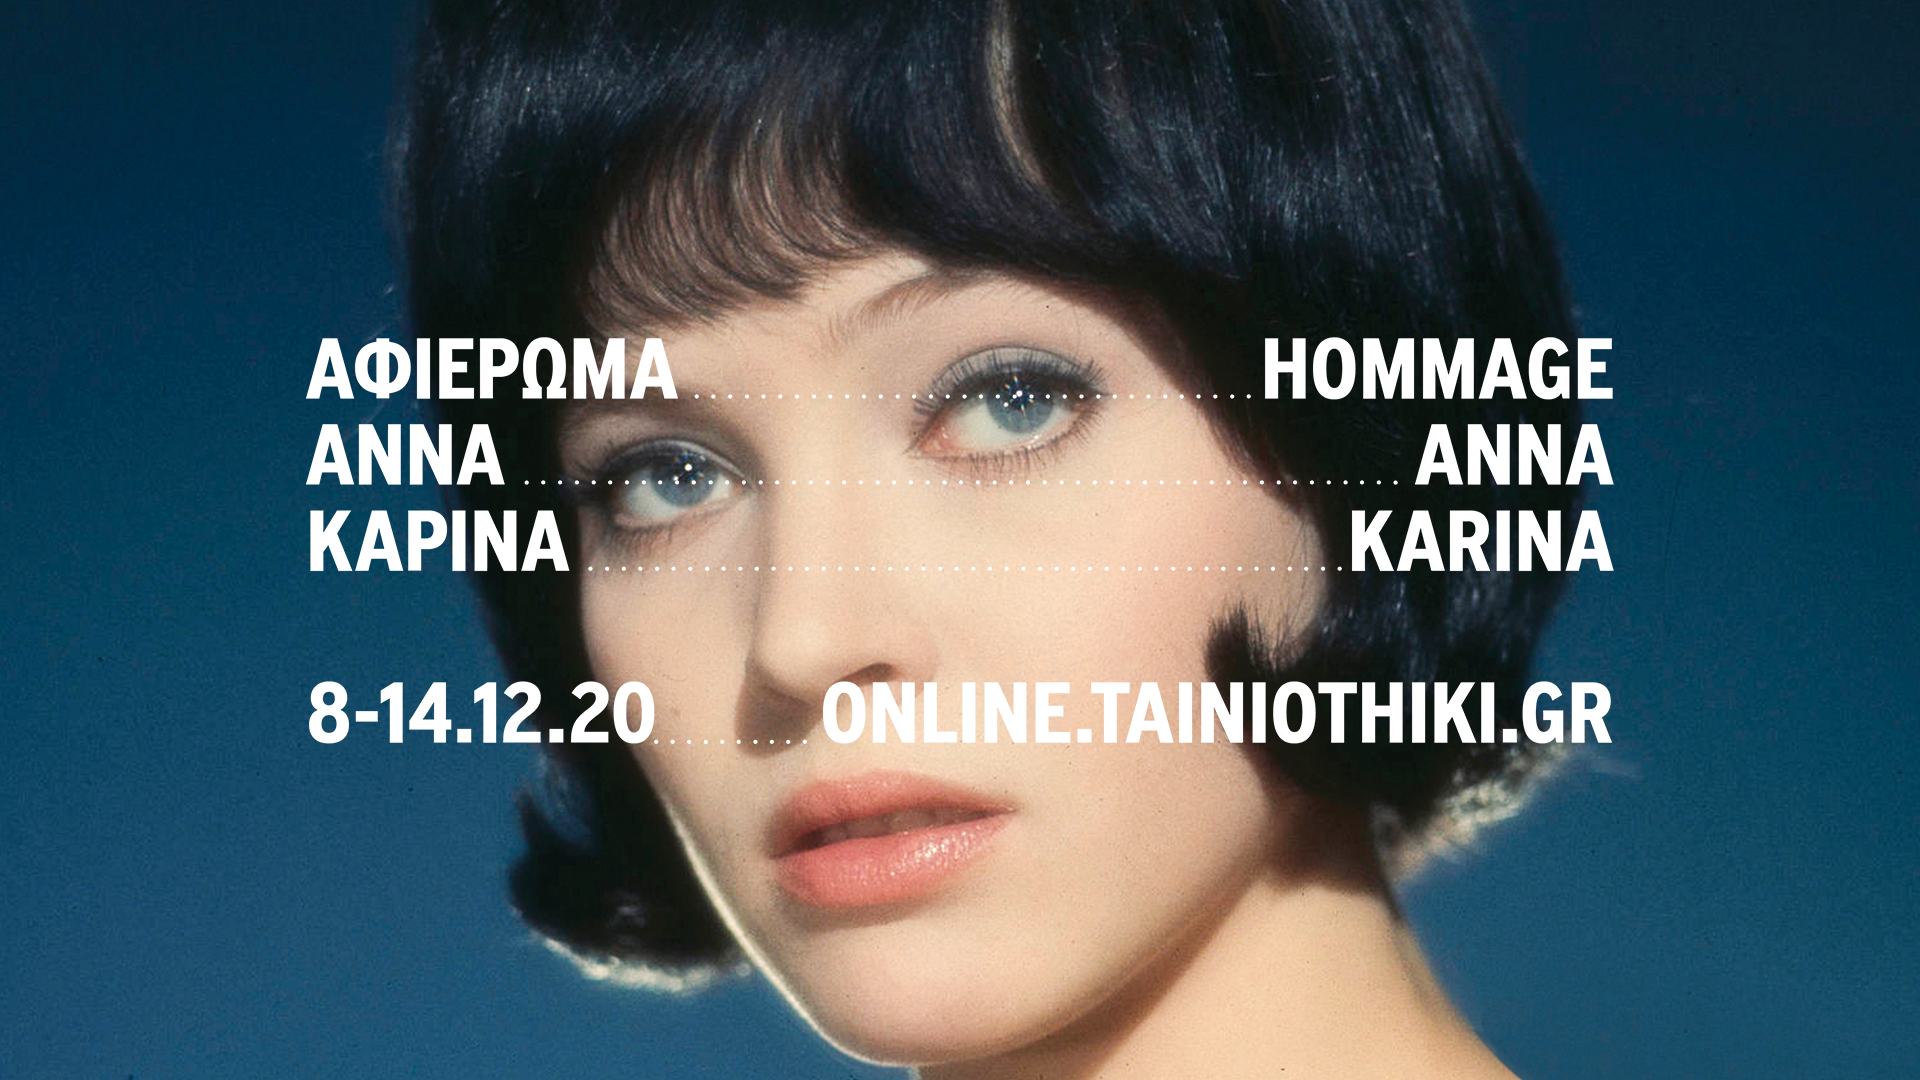 Tribute to Anna Karina